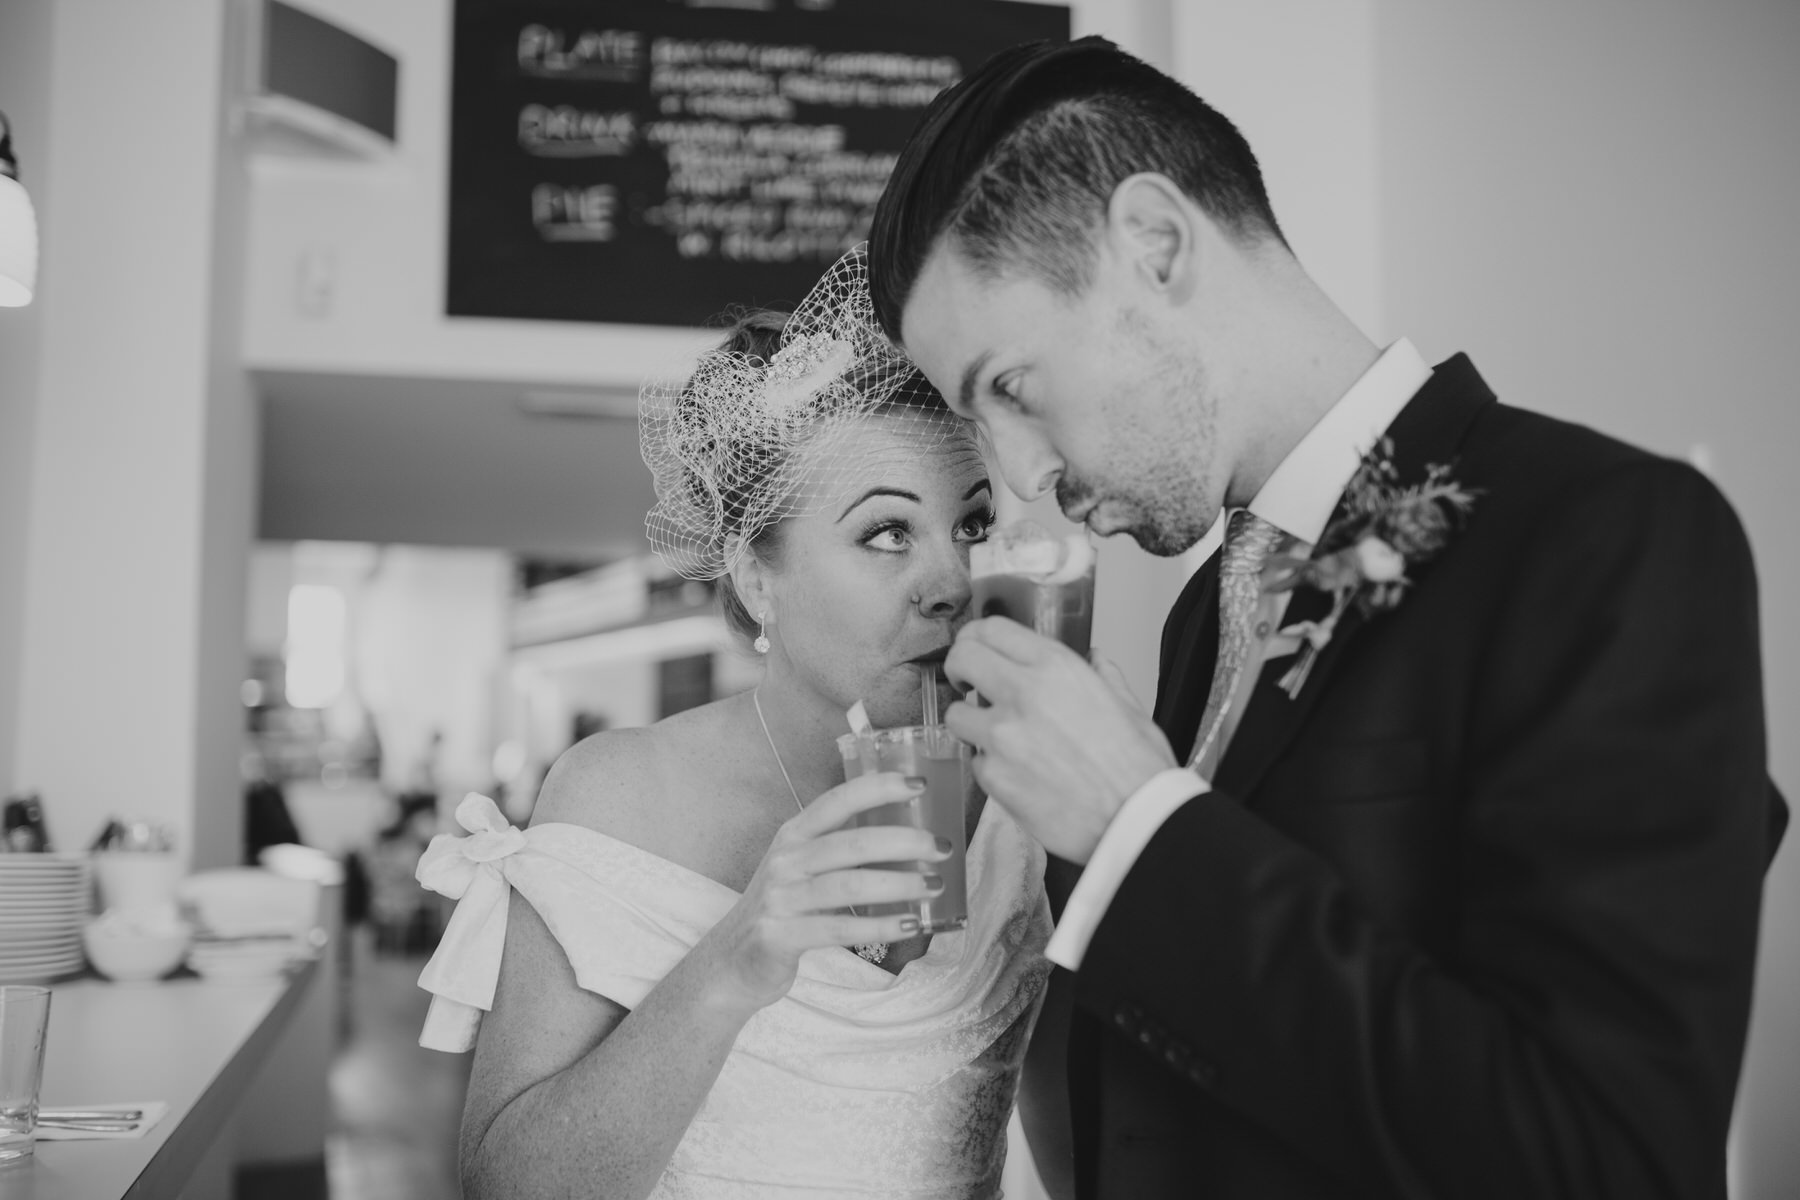 MS-Londesborough-Pub-wedding-Hackney-alternative-photographer-67-BW-bride-drinking-cocktails-Ritas-London.jpg